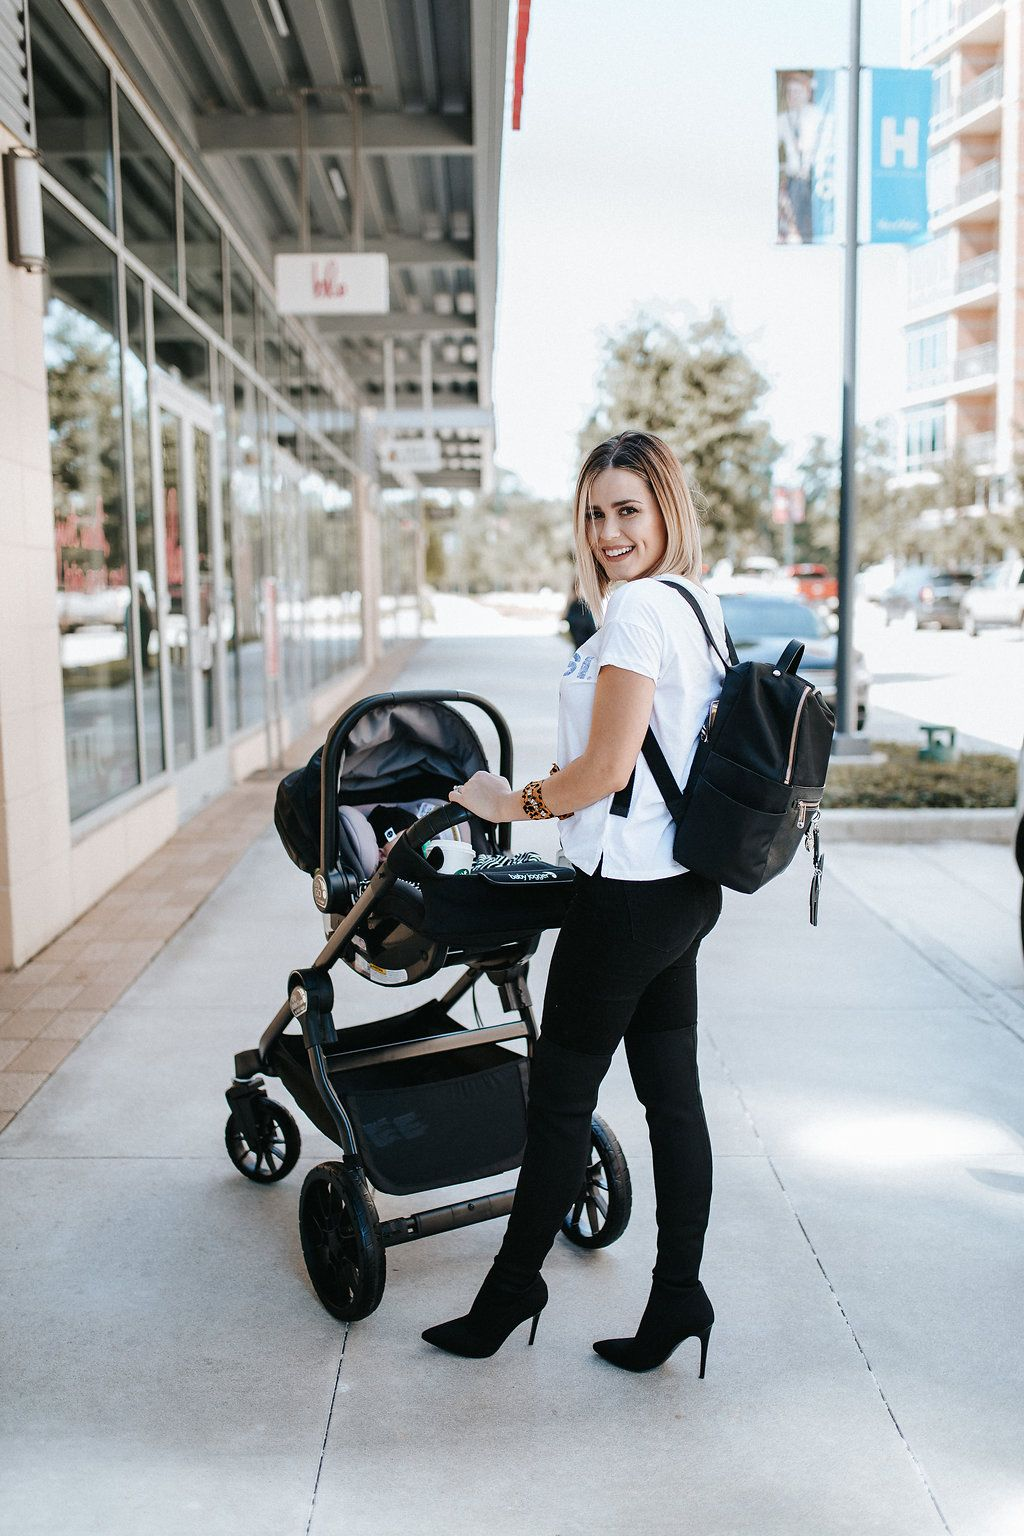 Our Favorite Spots to Stroll with Our City Select LUX